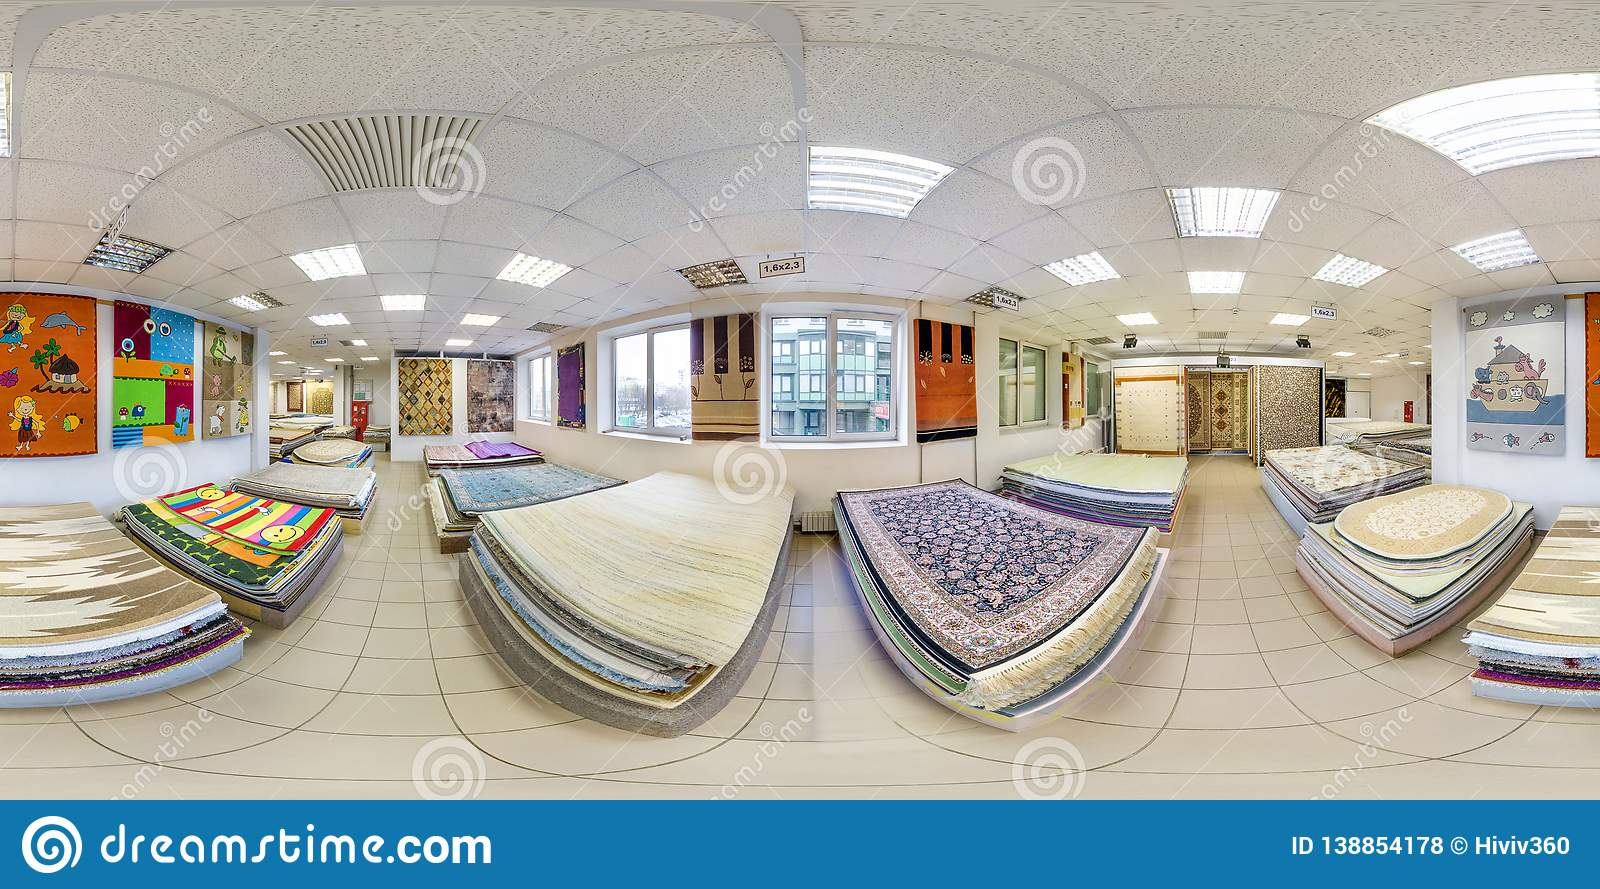 MINSK, BELARUS - MAY, 2017: Full seamless panorama 360 by 180 angle degrees view inside interior of store machine knitted